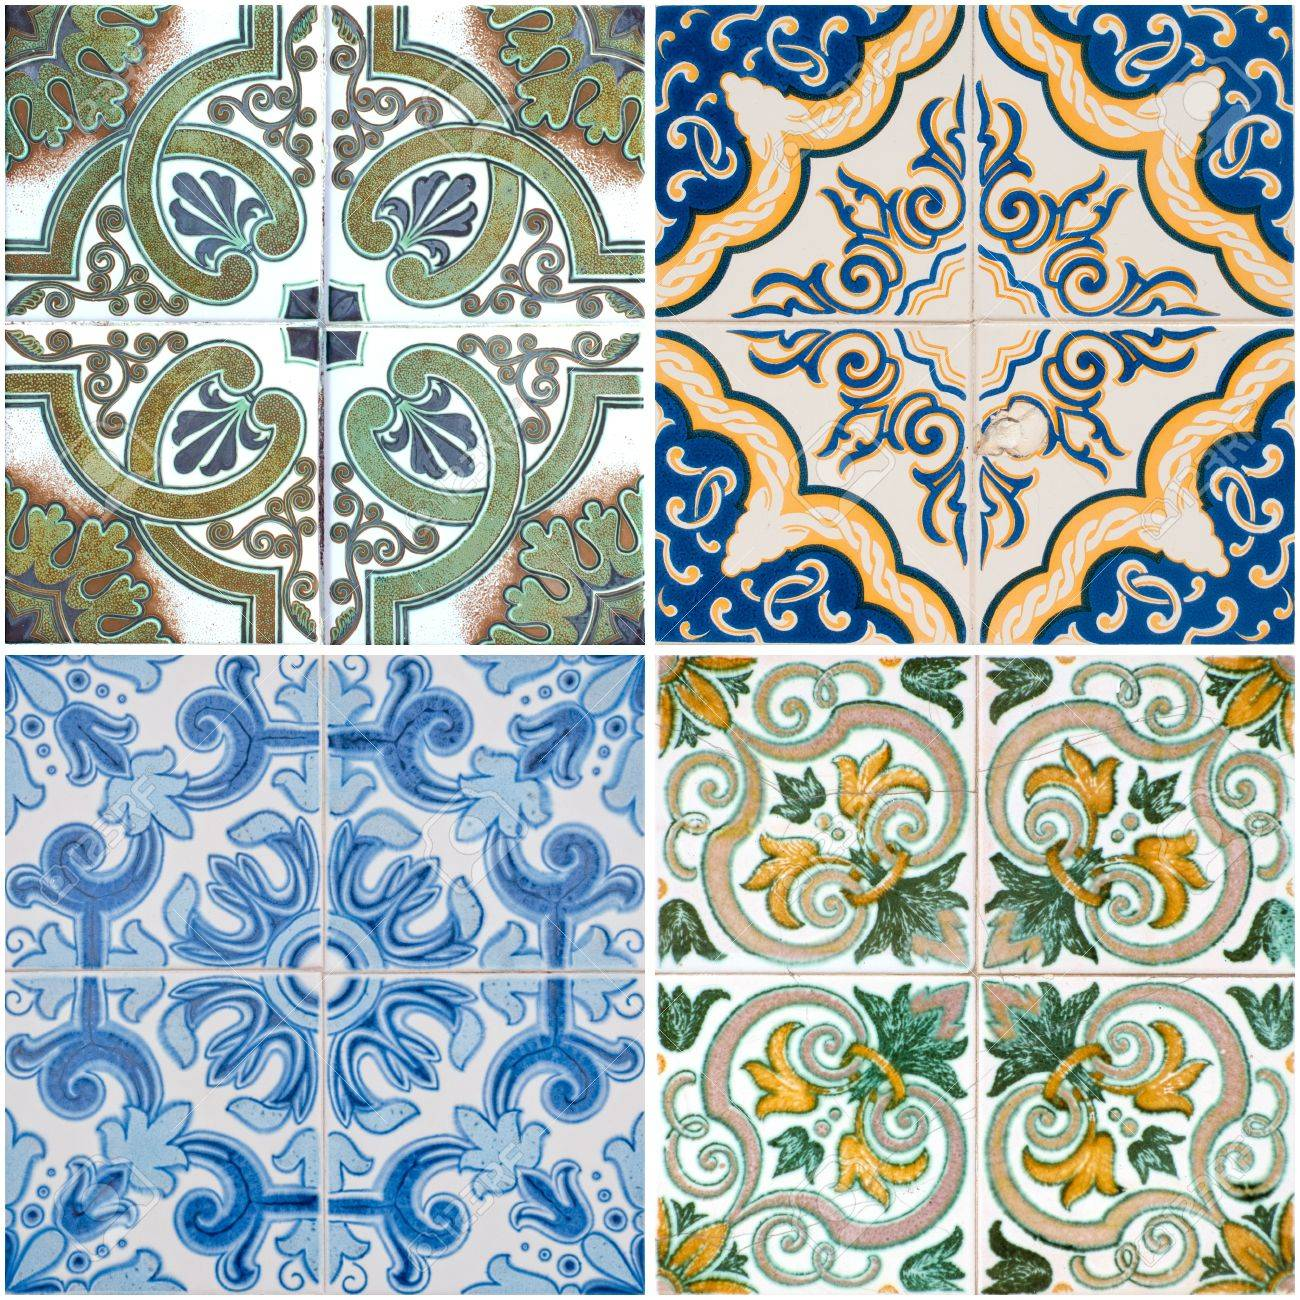 Colorful Vintage Ceramic Tiles Wall Decoration Stock Photo, Picture ...